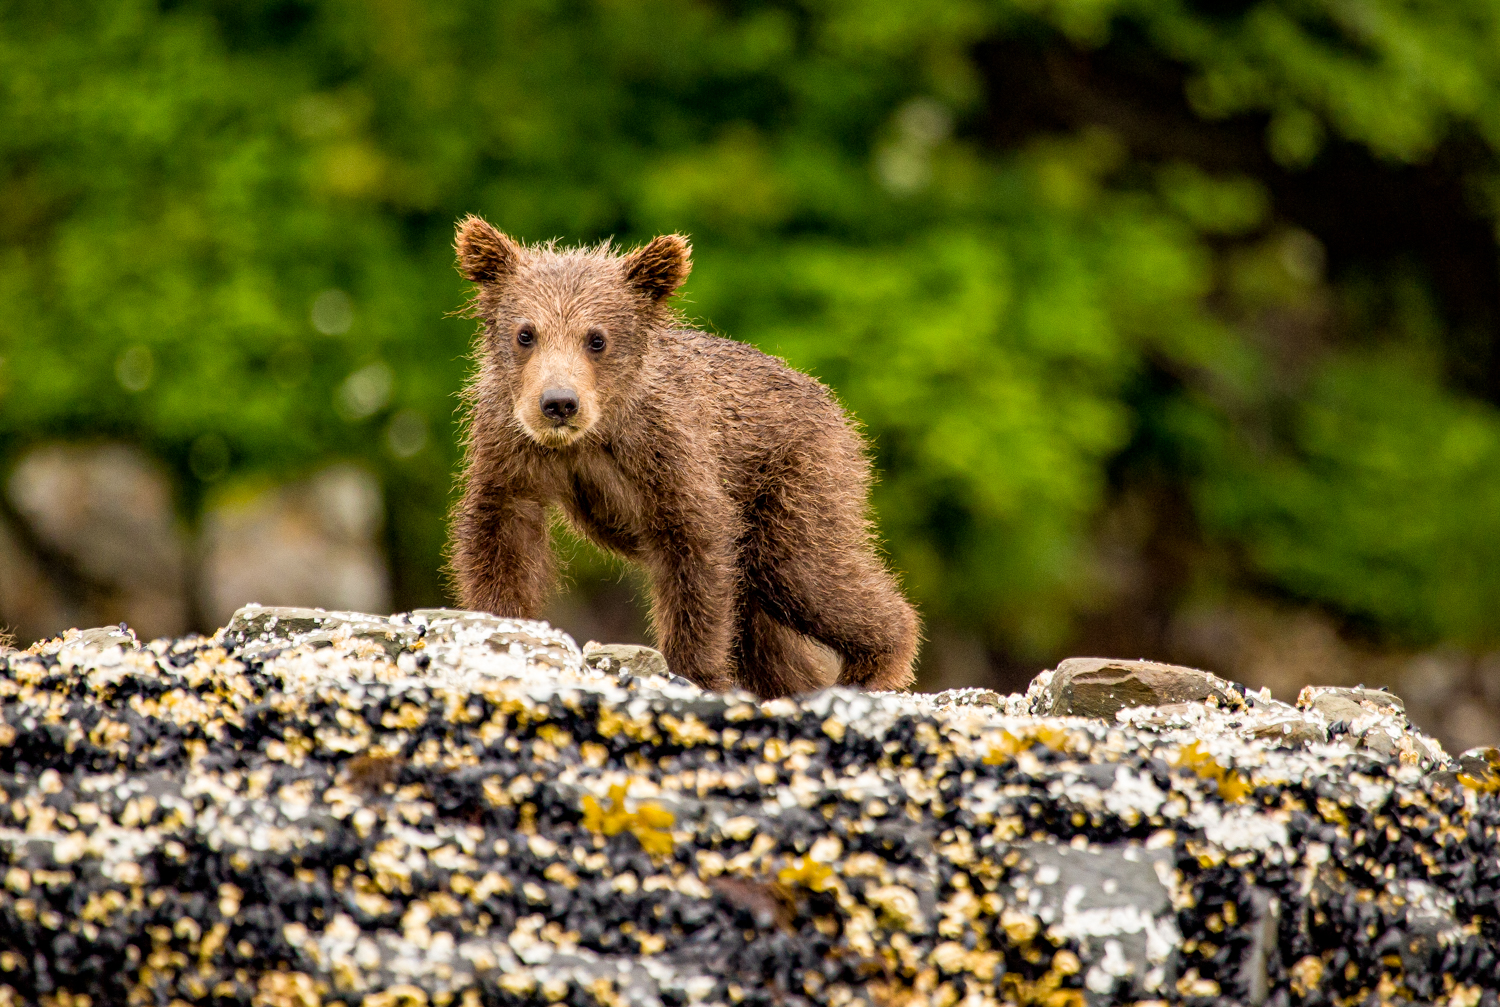 Coastal grizzly bear cub. Cute!